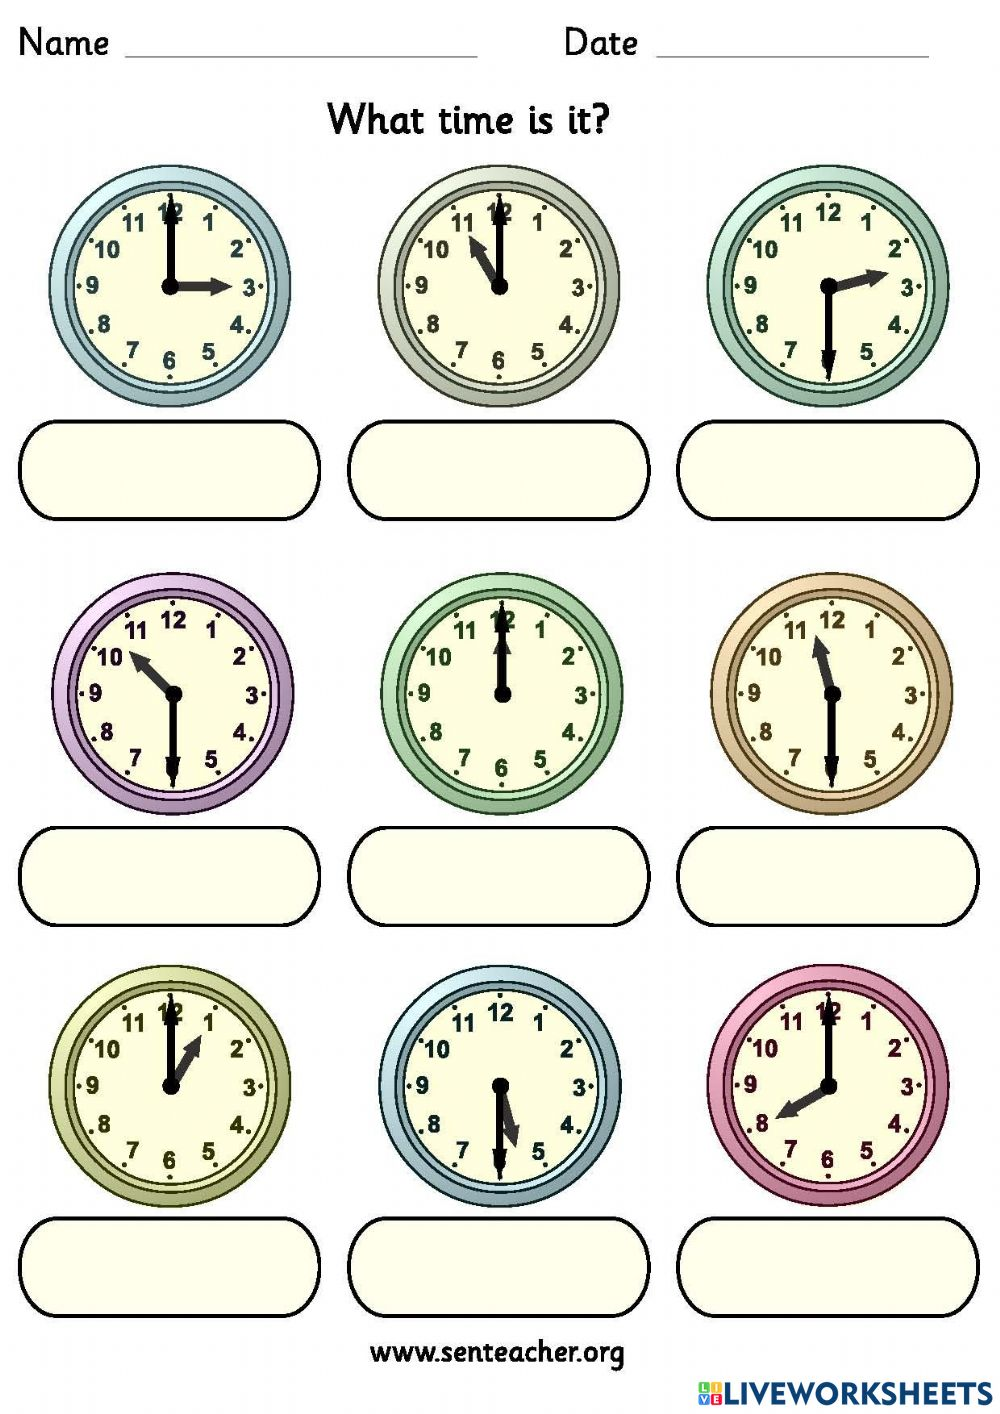 hight resolution of What time is it? online exercise for Grade 2